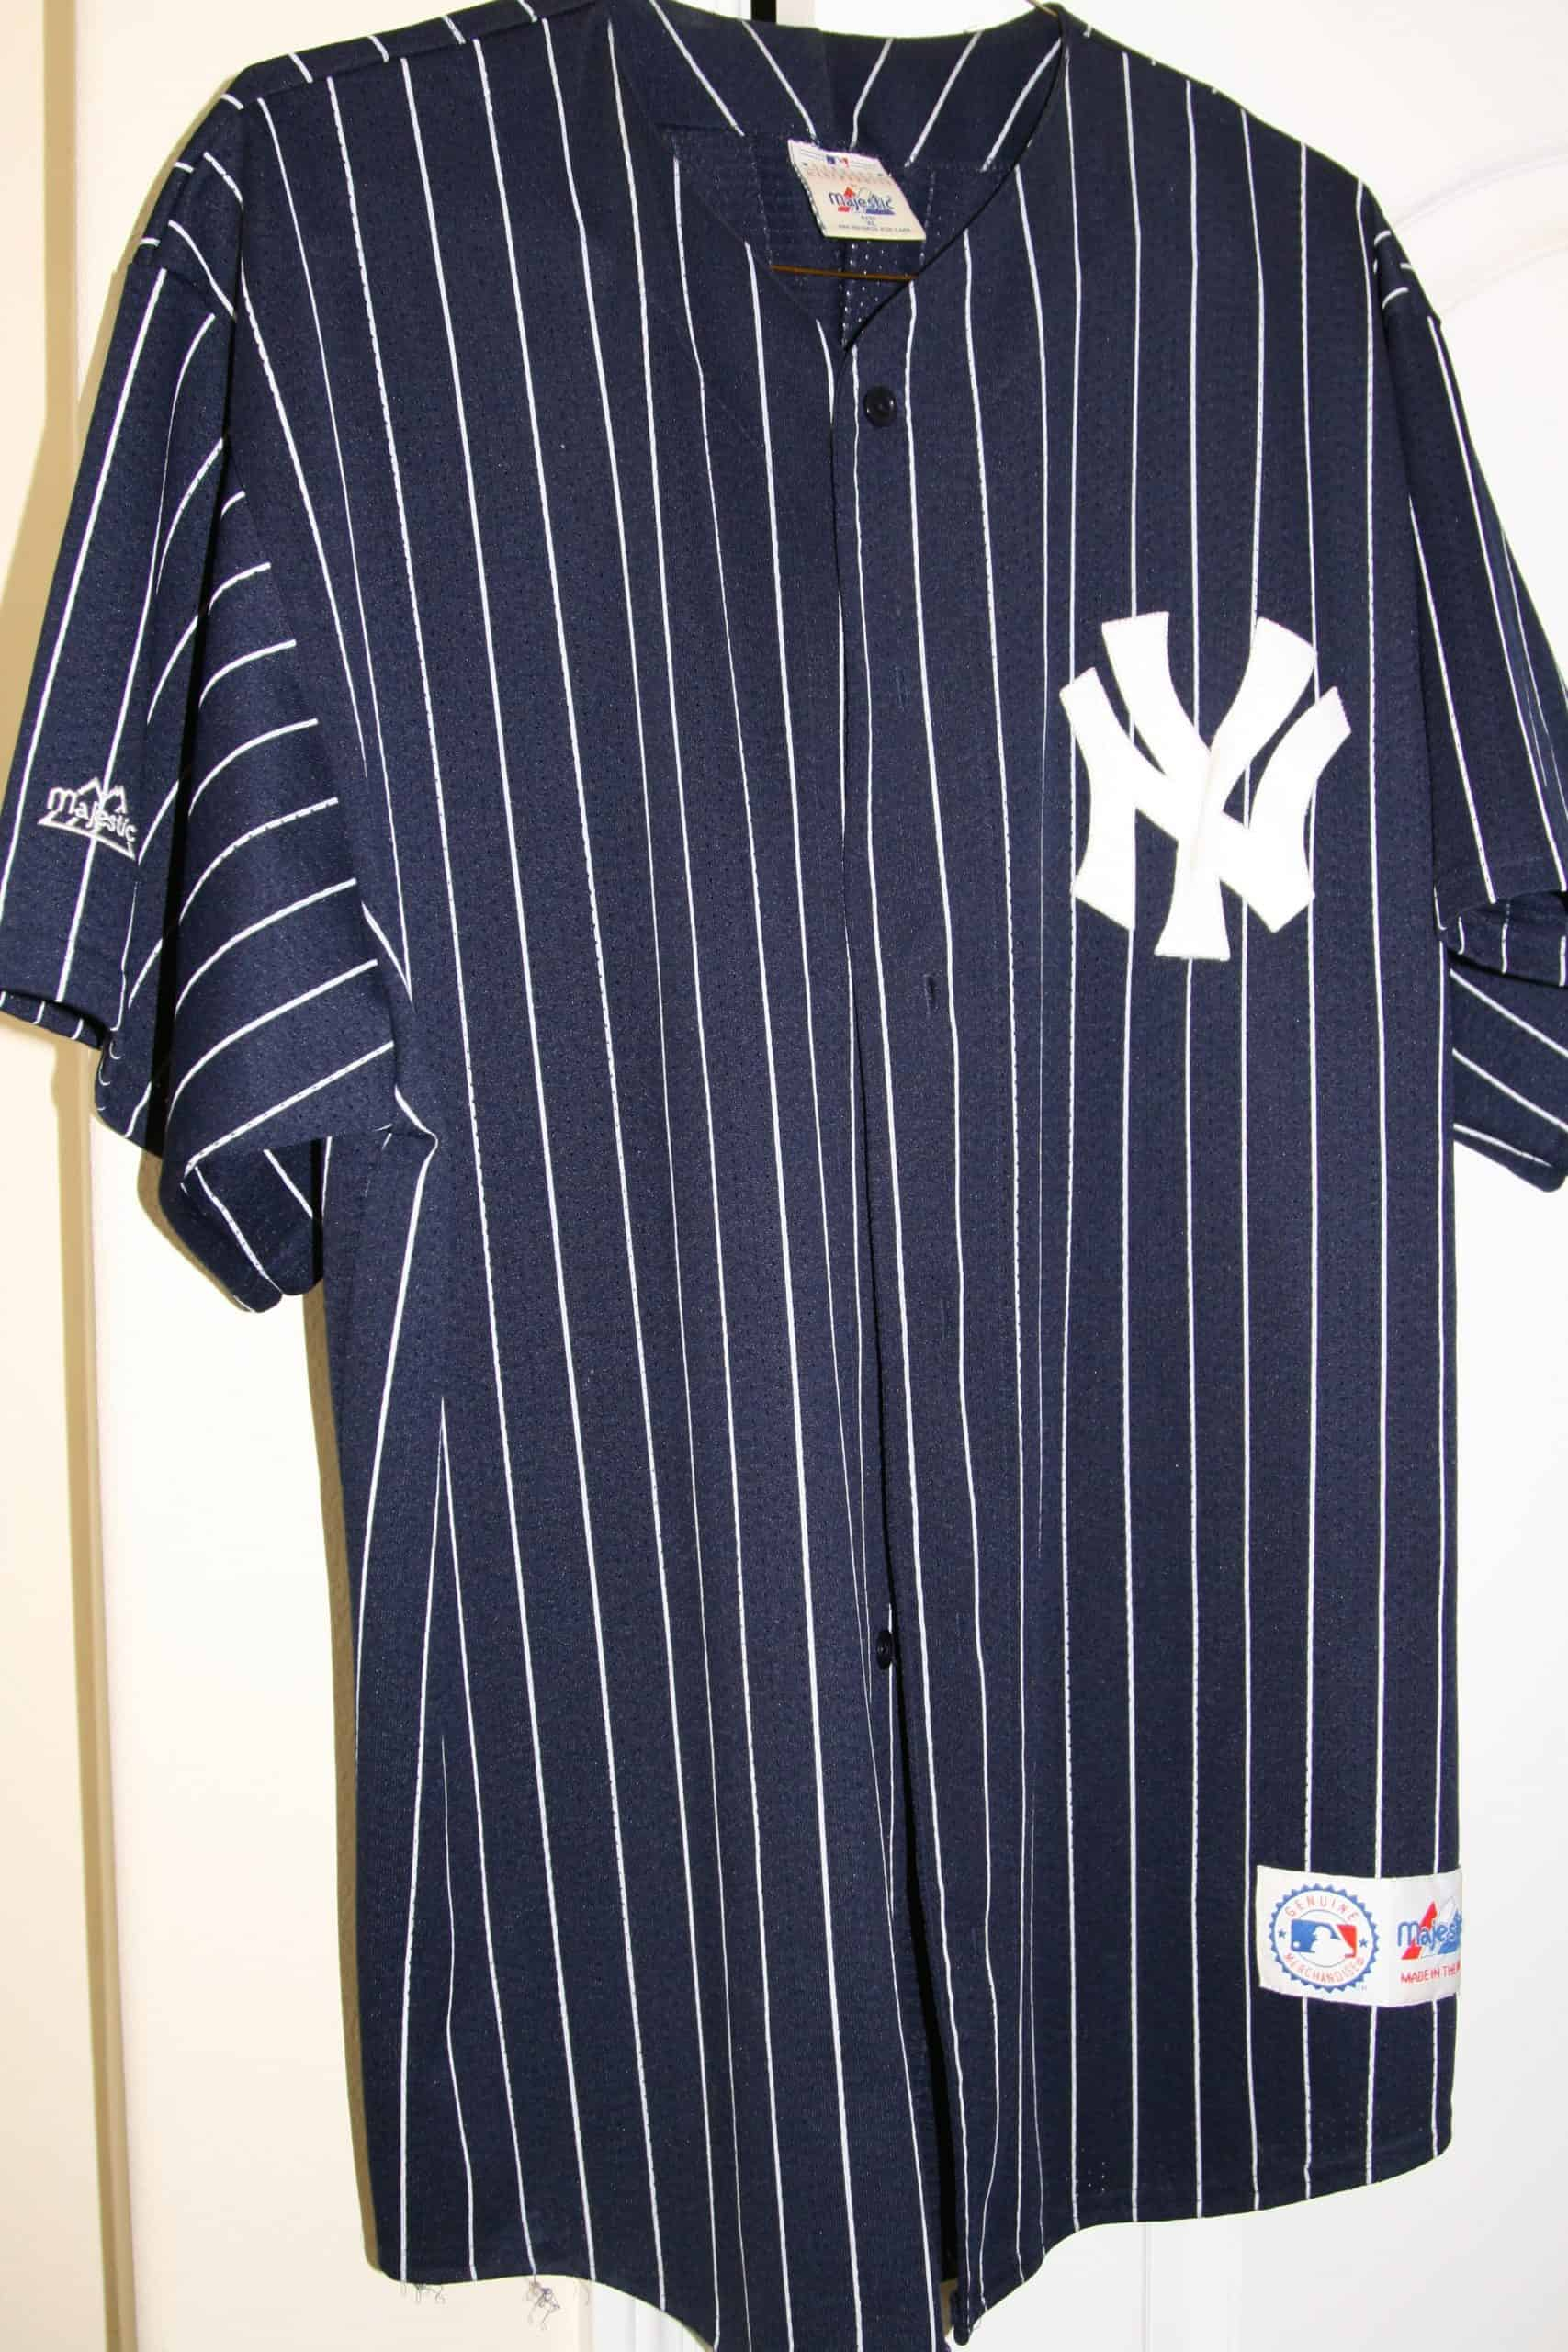 online retailer 191a7 4492c NY YANKEES AUTHENTIC MLB BP JERSEY, ACE RARE COLLECTIBLES